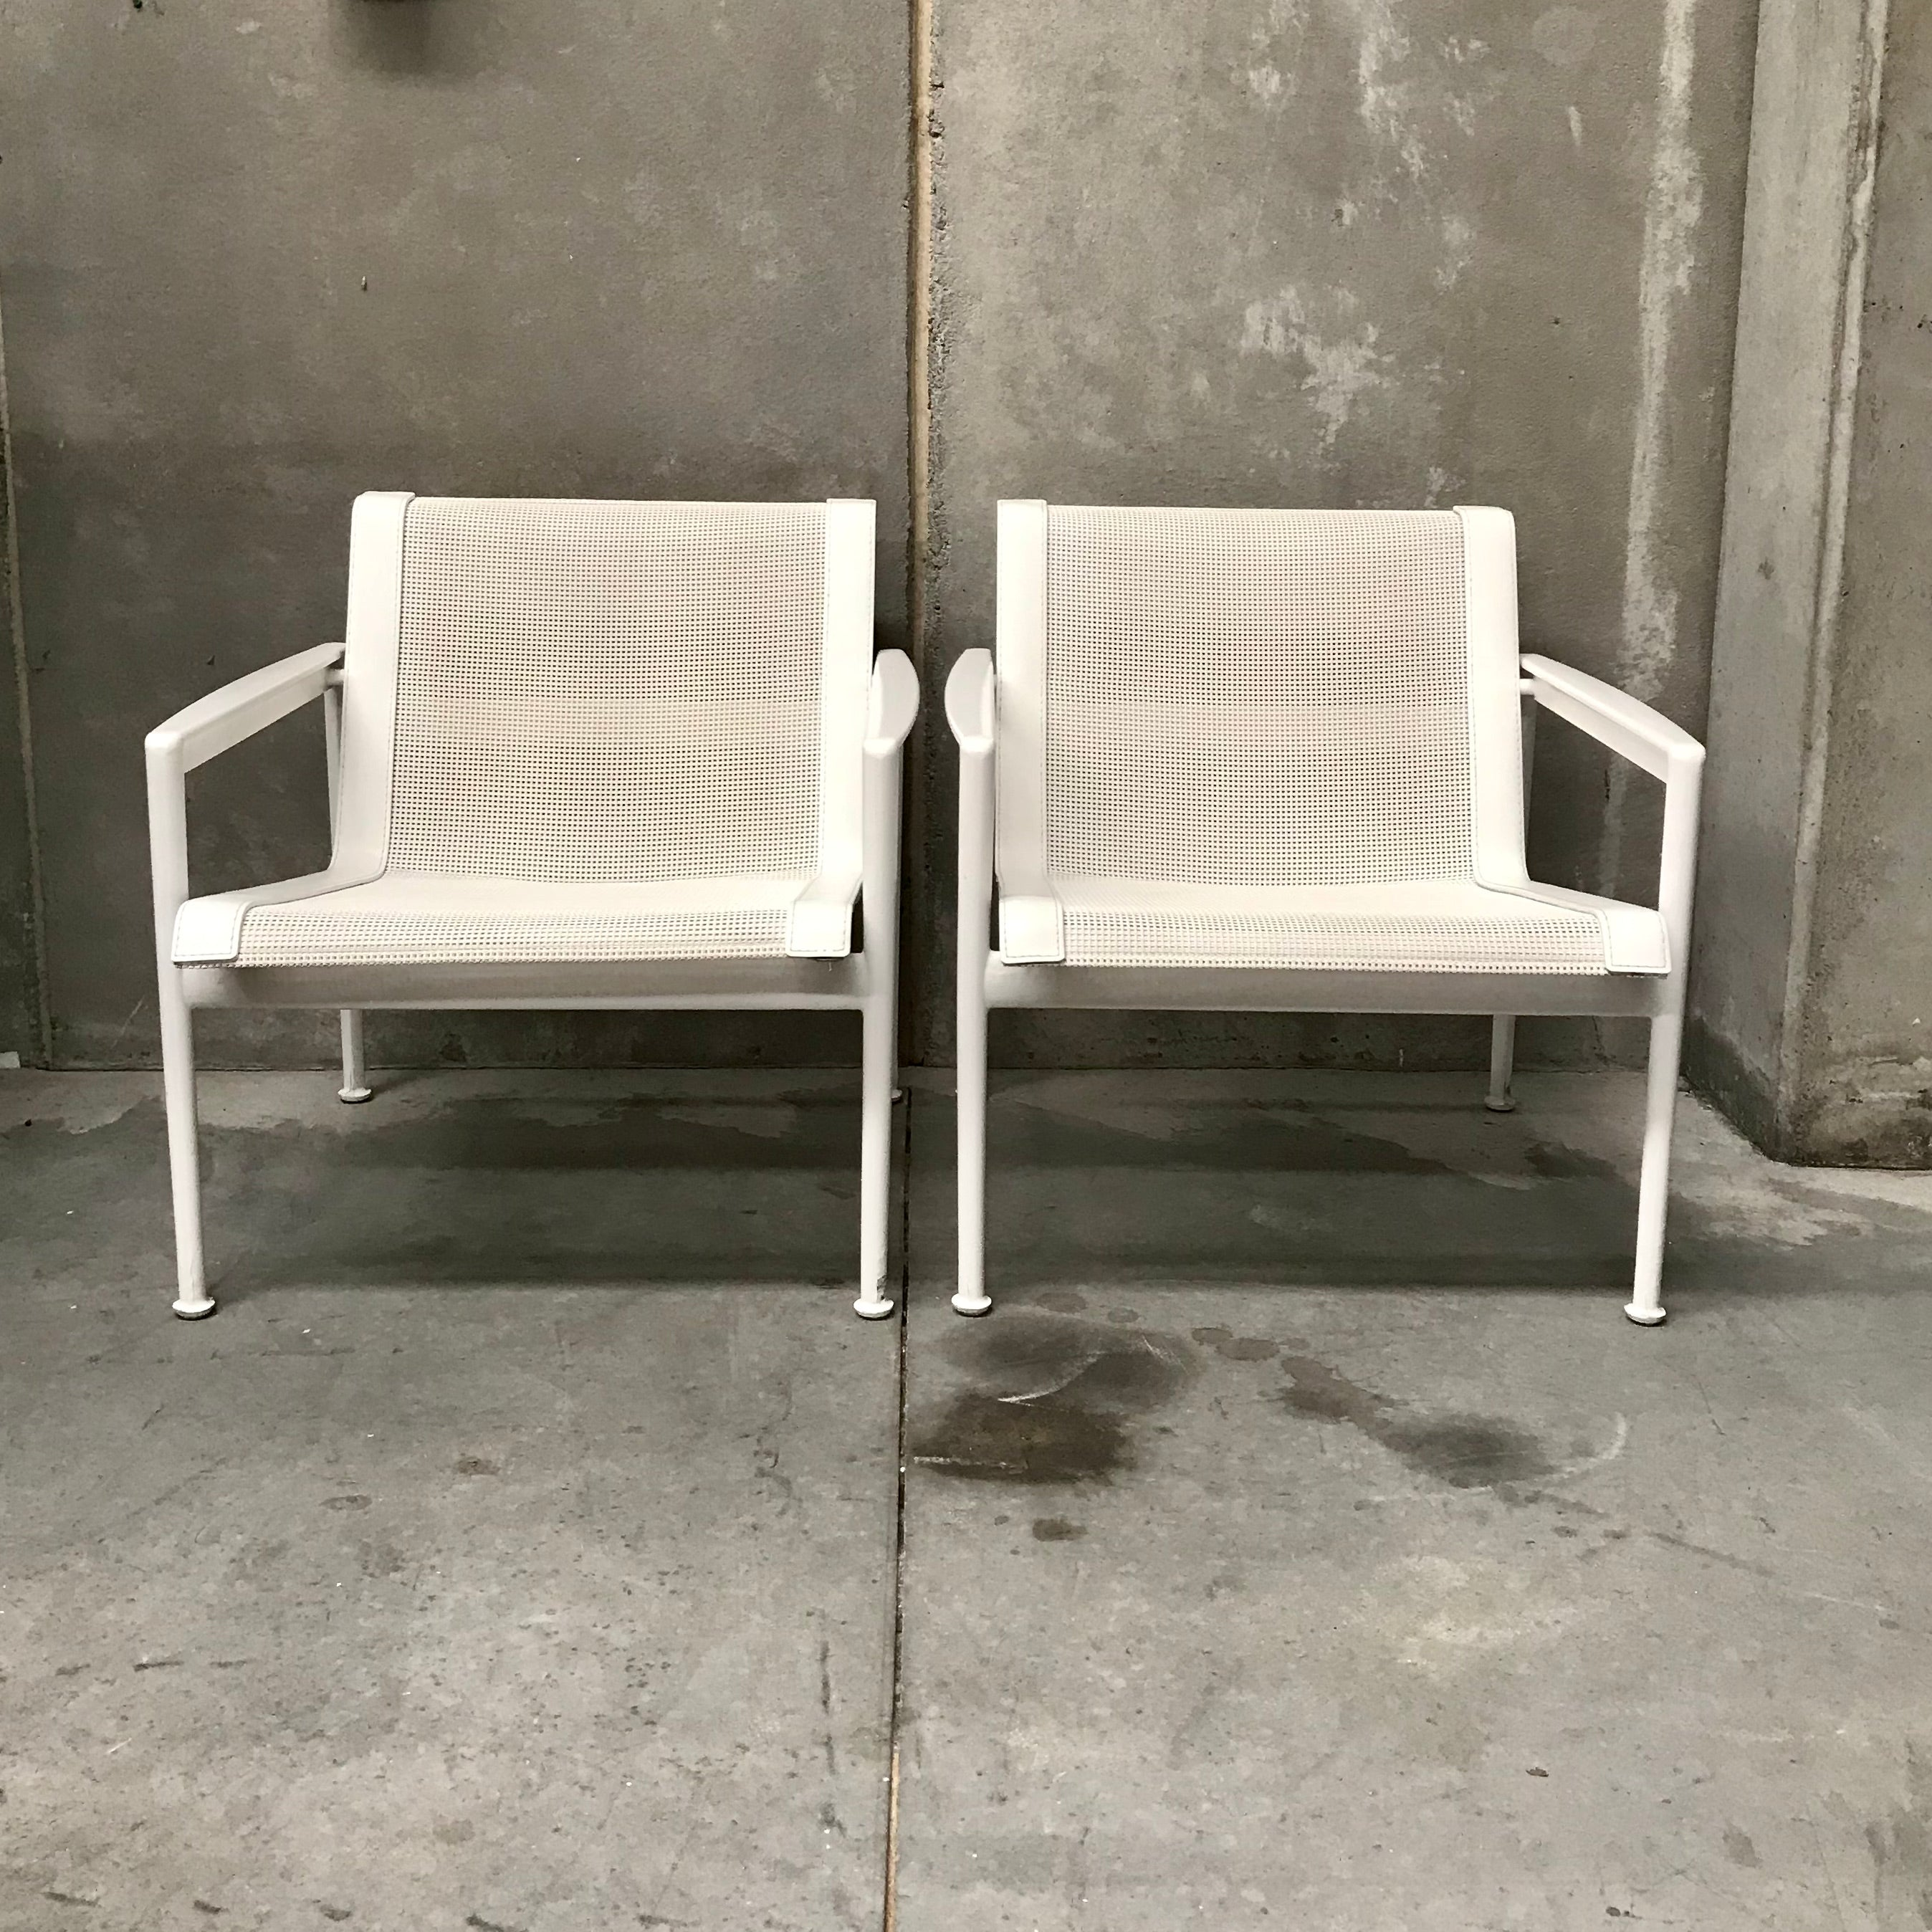 PAIR of 1966 Collection Lounge Chairs by Richard Schultz for B&B Italia